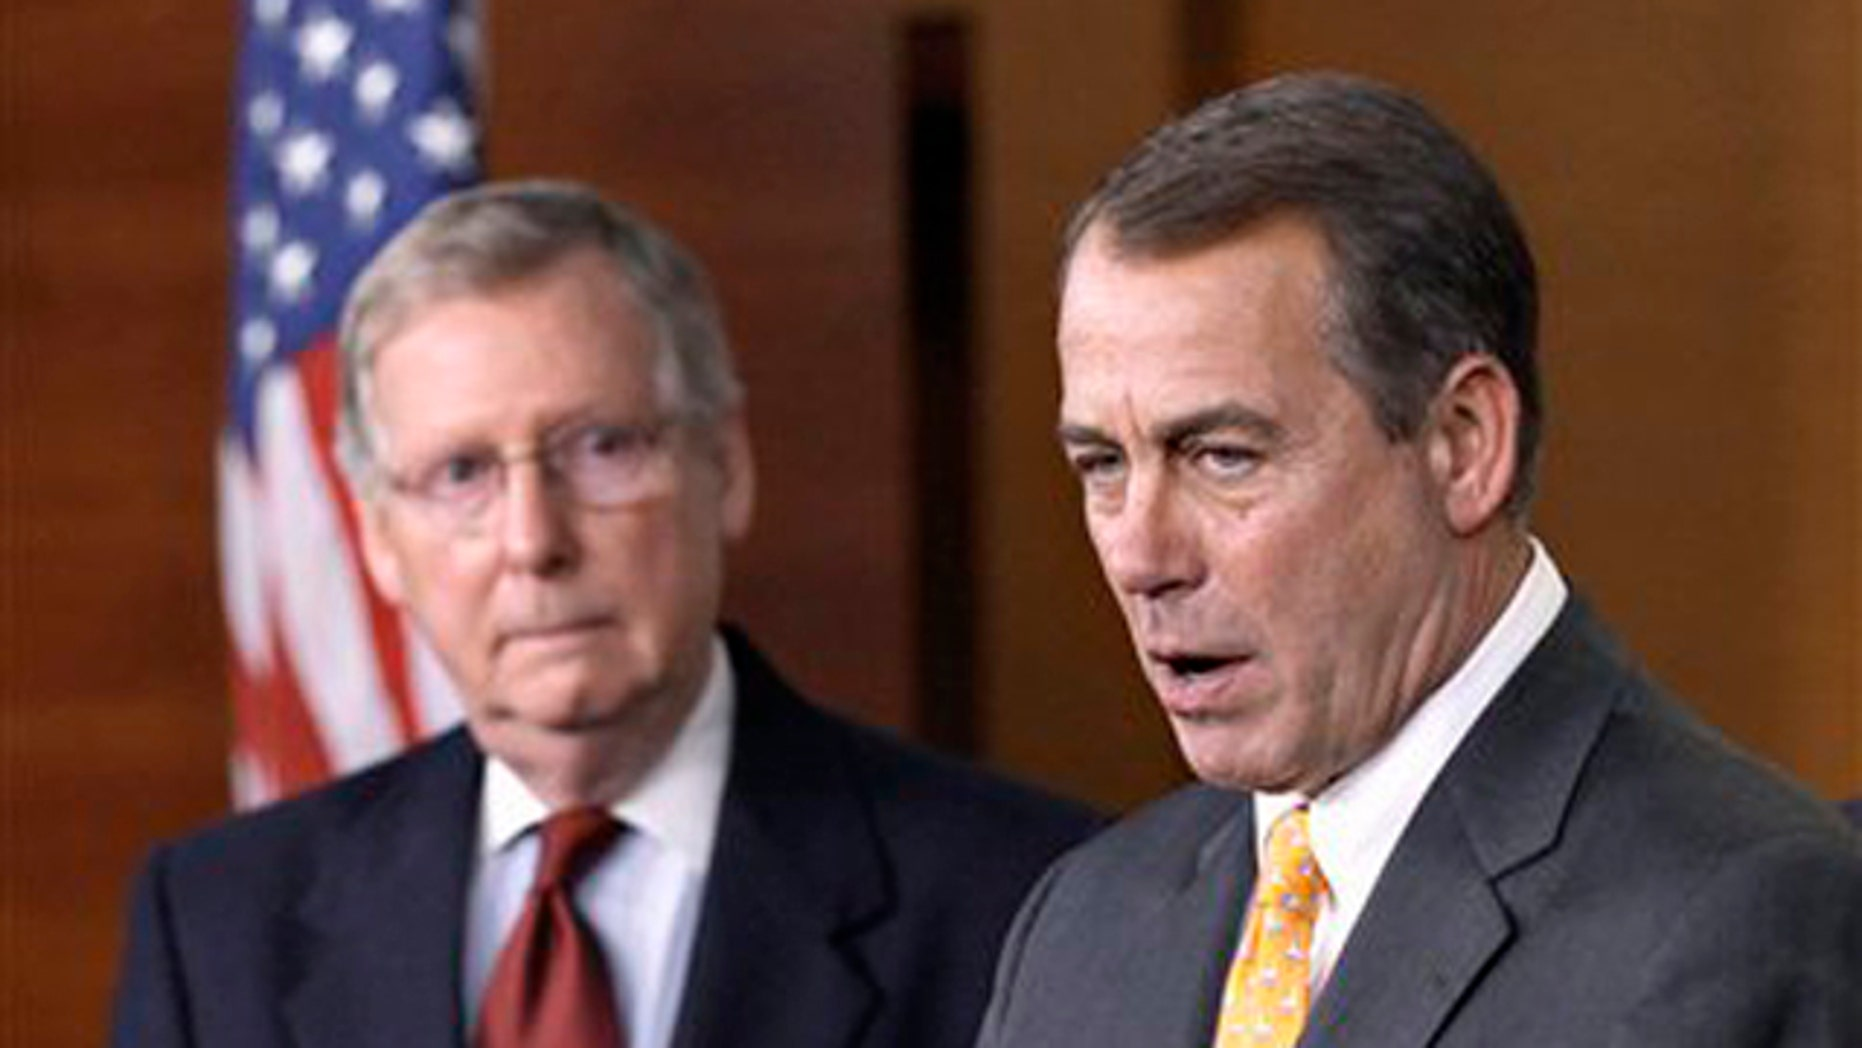 In this Nov. 3 file photo, House Republican Leader John Boehner, right, speaks alongside Republican Senate Leader Mitch McConnell on Capitol Hill in Washington. (AP Photo)